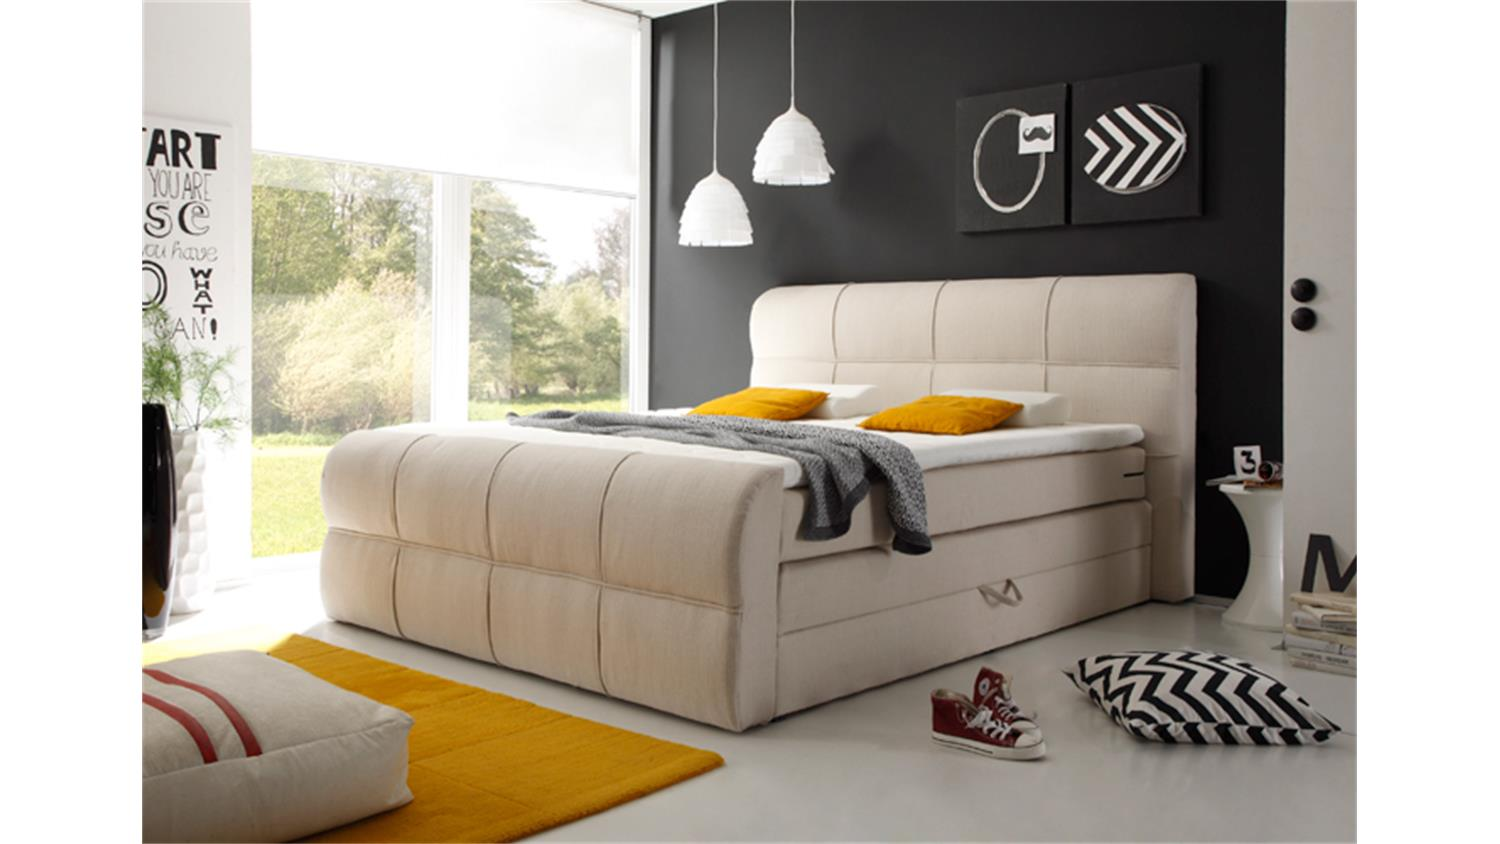 boxspring bett mit himmel das beste aus wohndesign und m bel inspiration. Black Bedroom Furniture Sets. Home Design Ideas